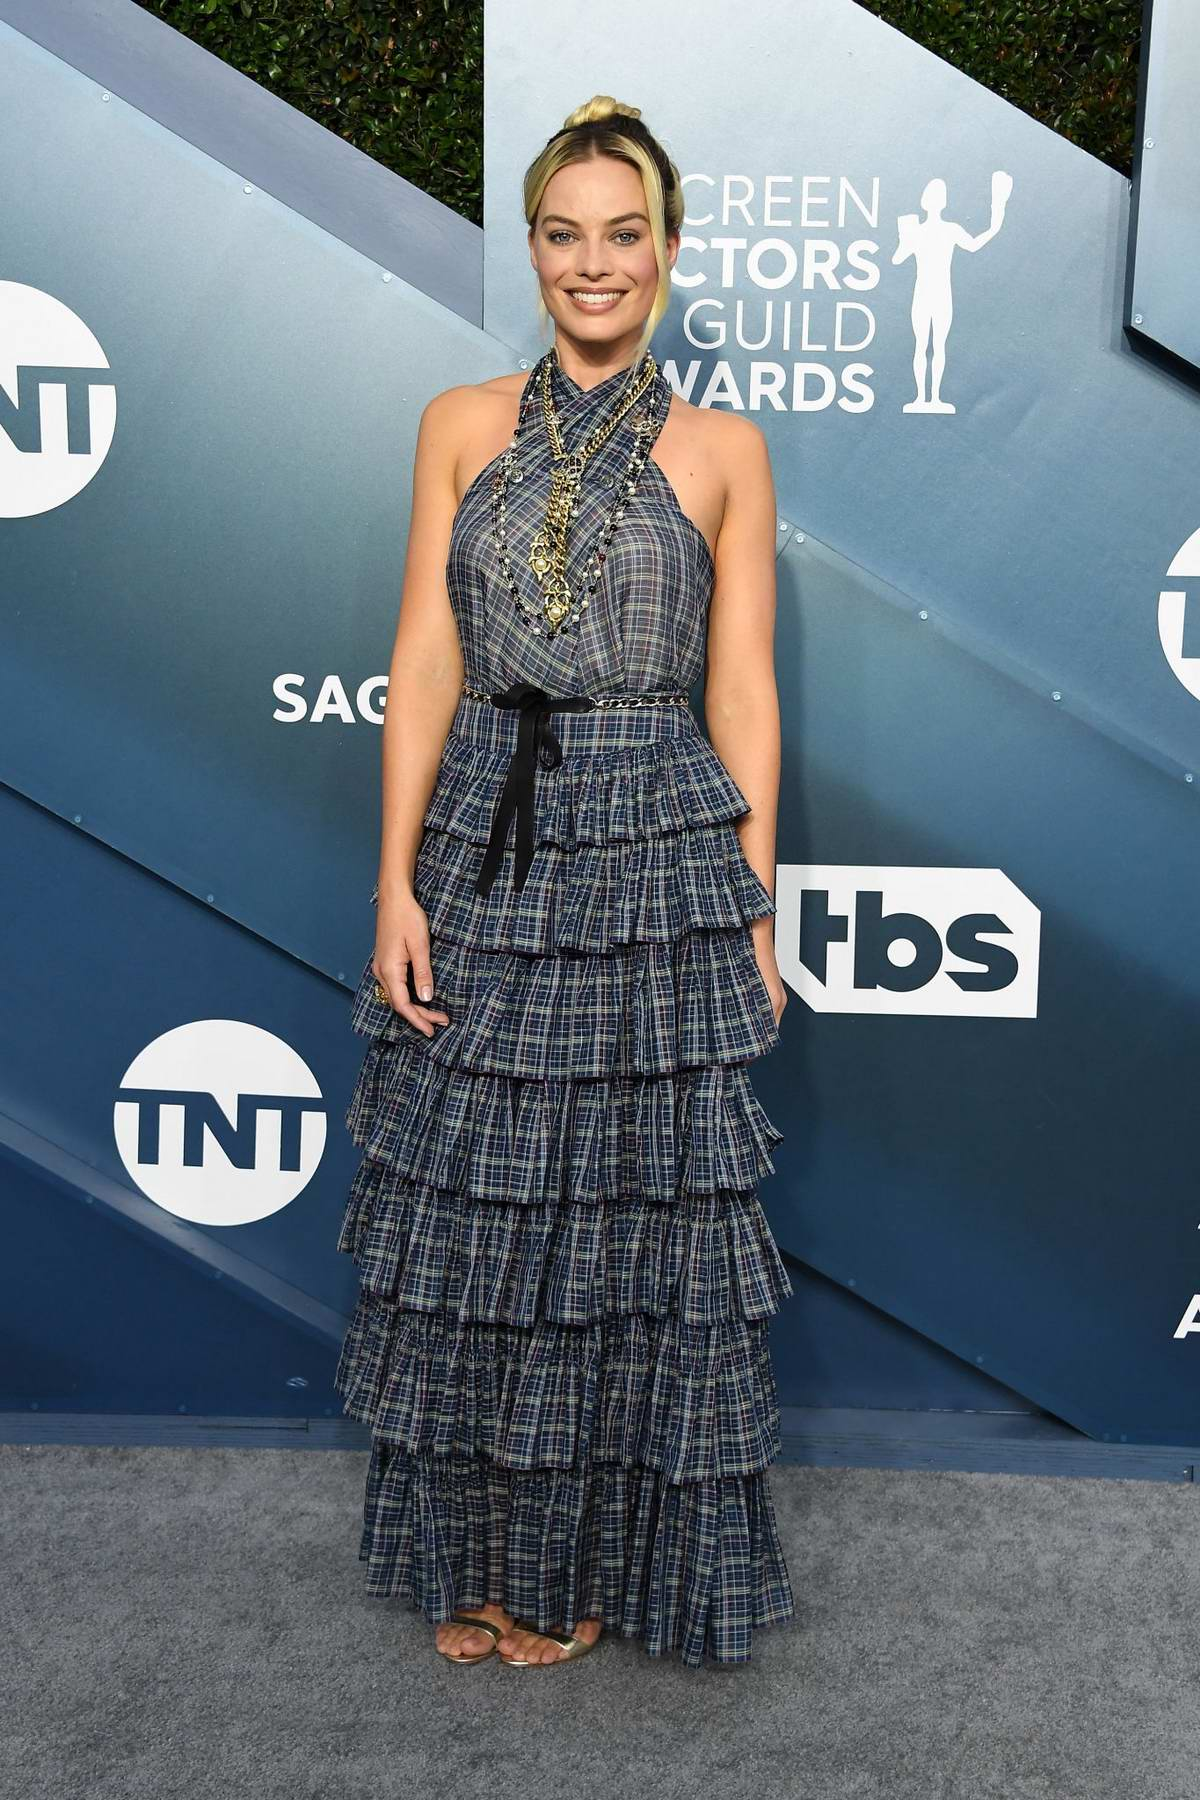 Margot Robbie attends the 26th Annual Screen Actors Guild Awards at the Shrine Auditorium in Los Angeles